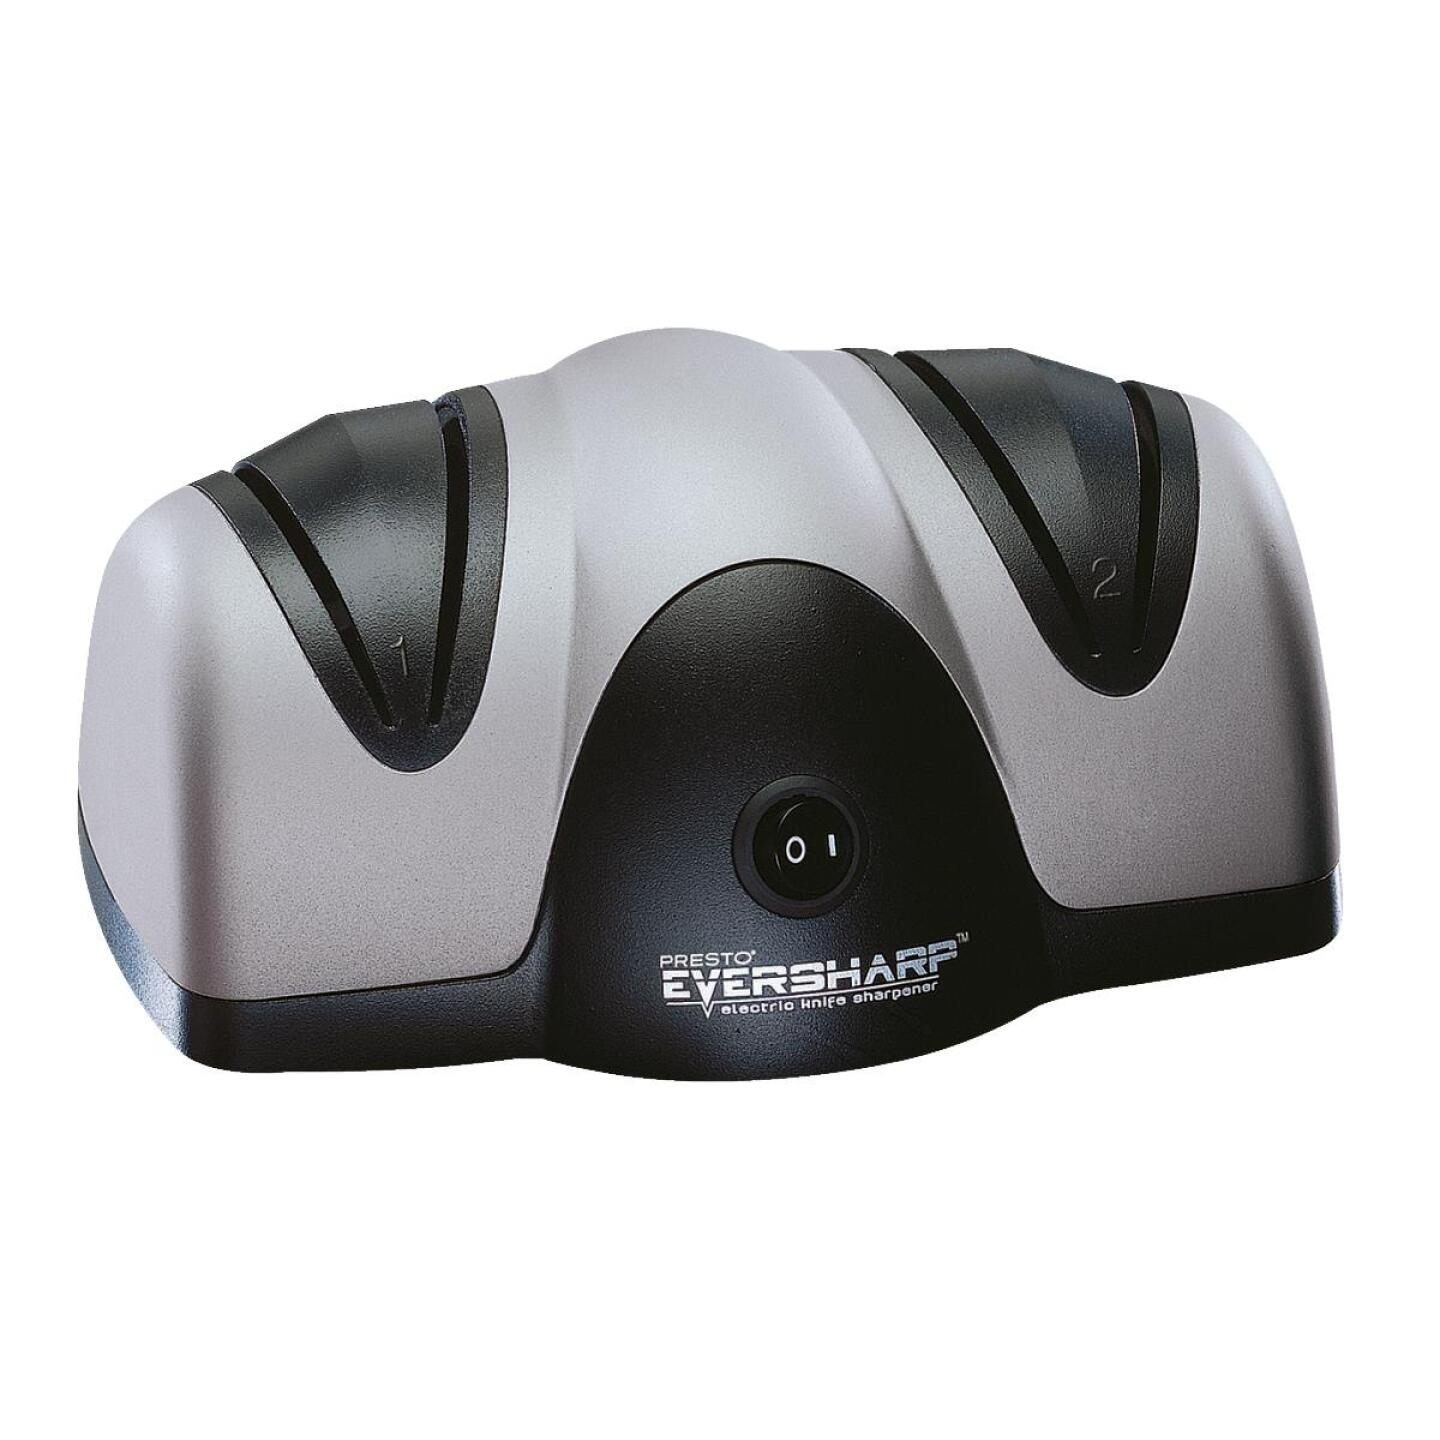 Presto EverSharp 2-Stage Electric Knife Sharpener Image 1